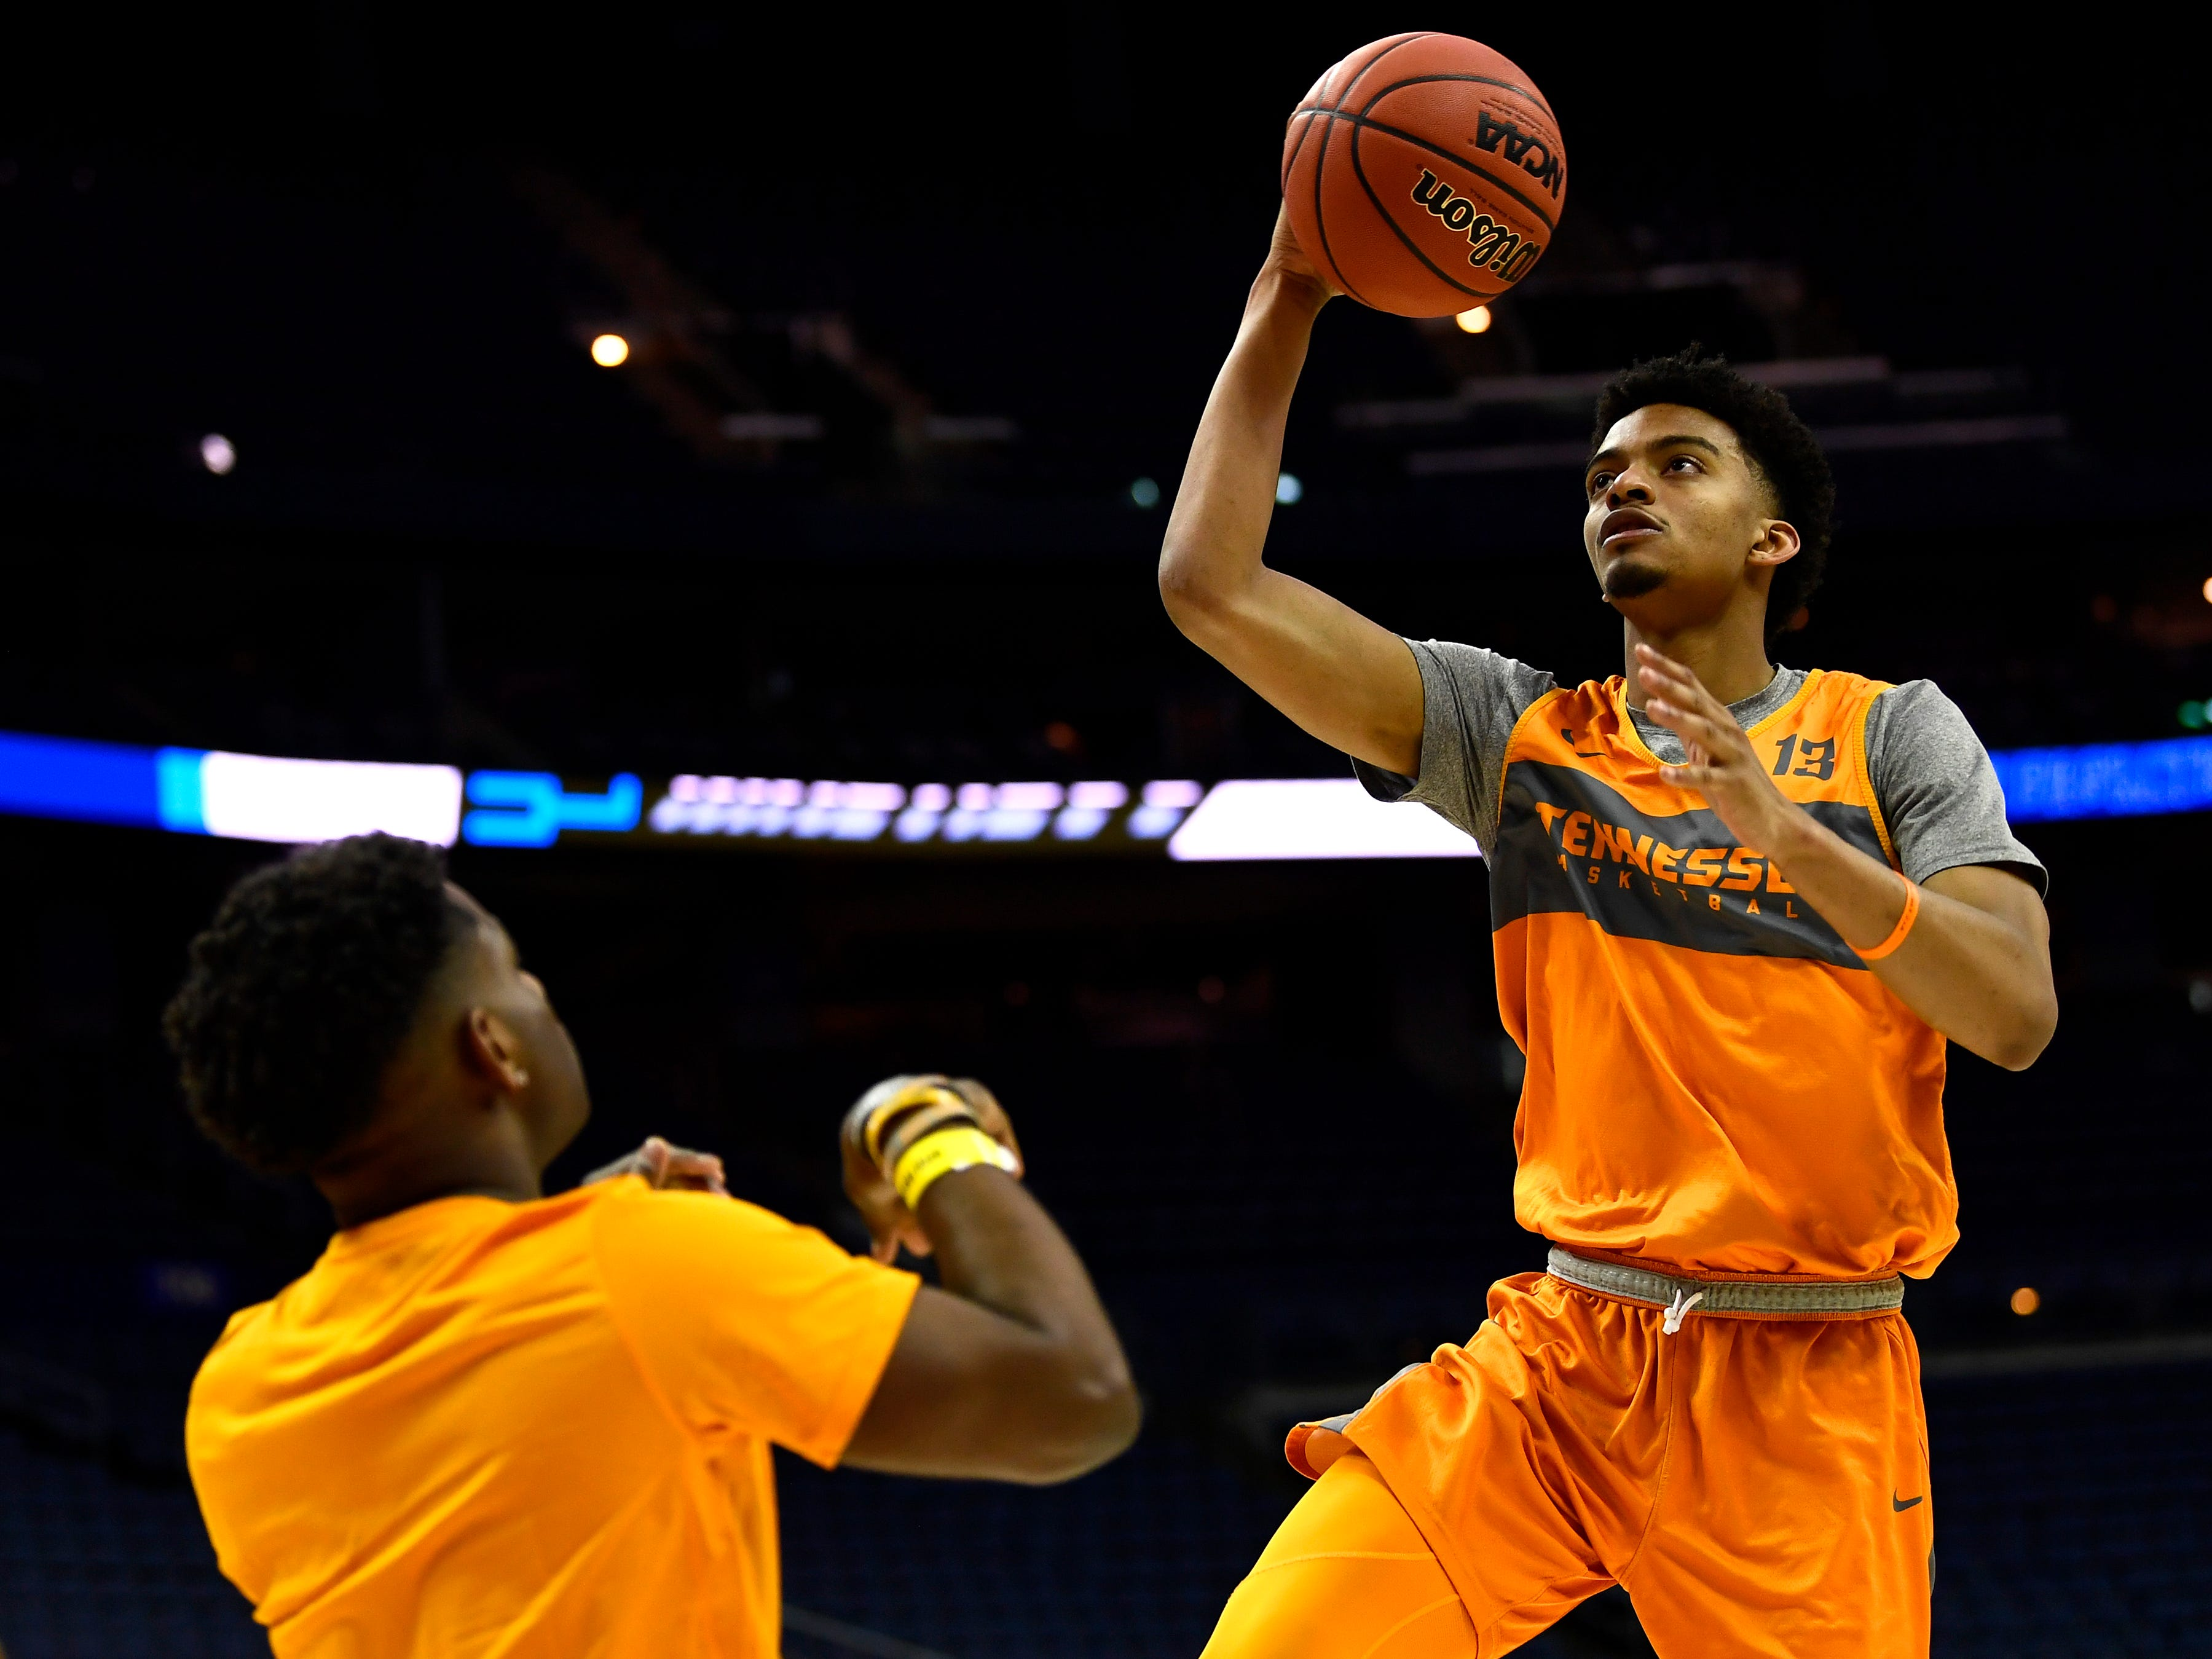 Tennessee guard Jalen Johnson (13) goes for the layup during Tennessee's practice on Thursday, March 21, 2019, before their first round NCAA Tournament game against Colgate at Nationwide Arena in Columbus, Ohio.